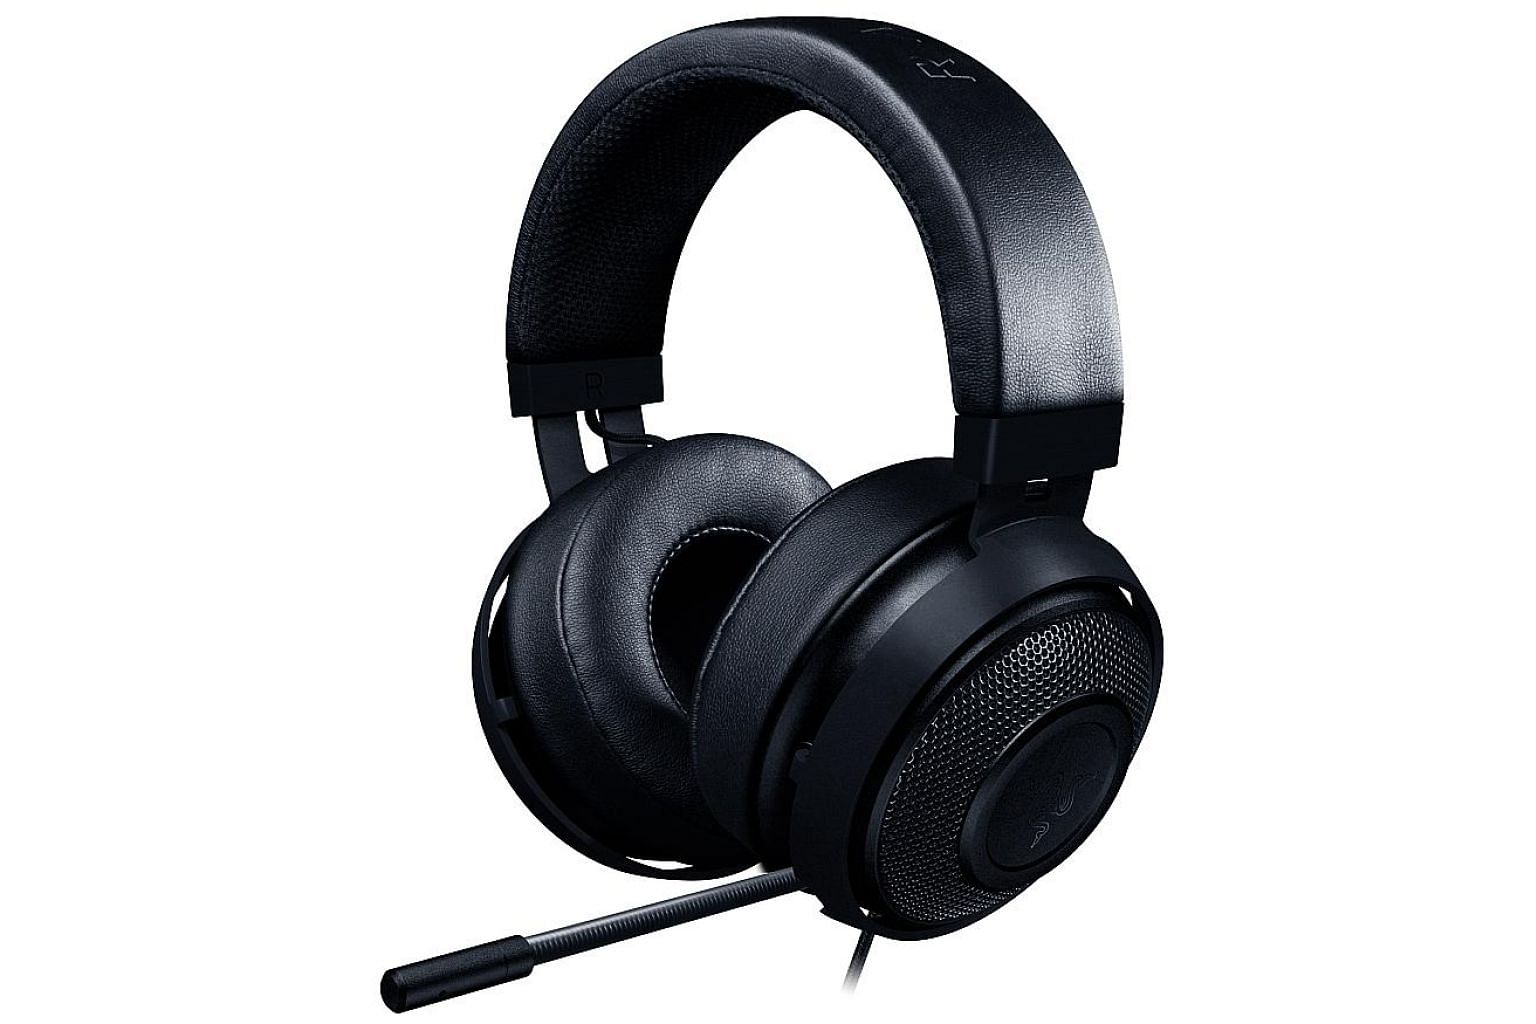 As expected from a gaming headset, Razer's Kraken Pro V2 runs rather bass-heavy, with lots of emphasis at the lower end of the spectrum.